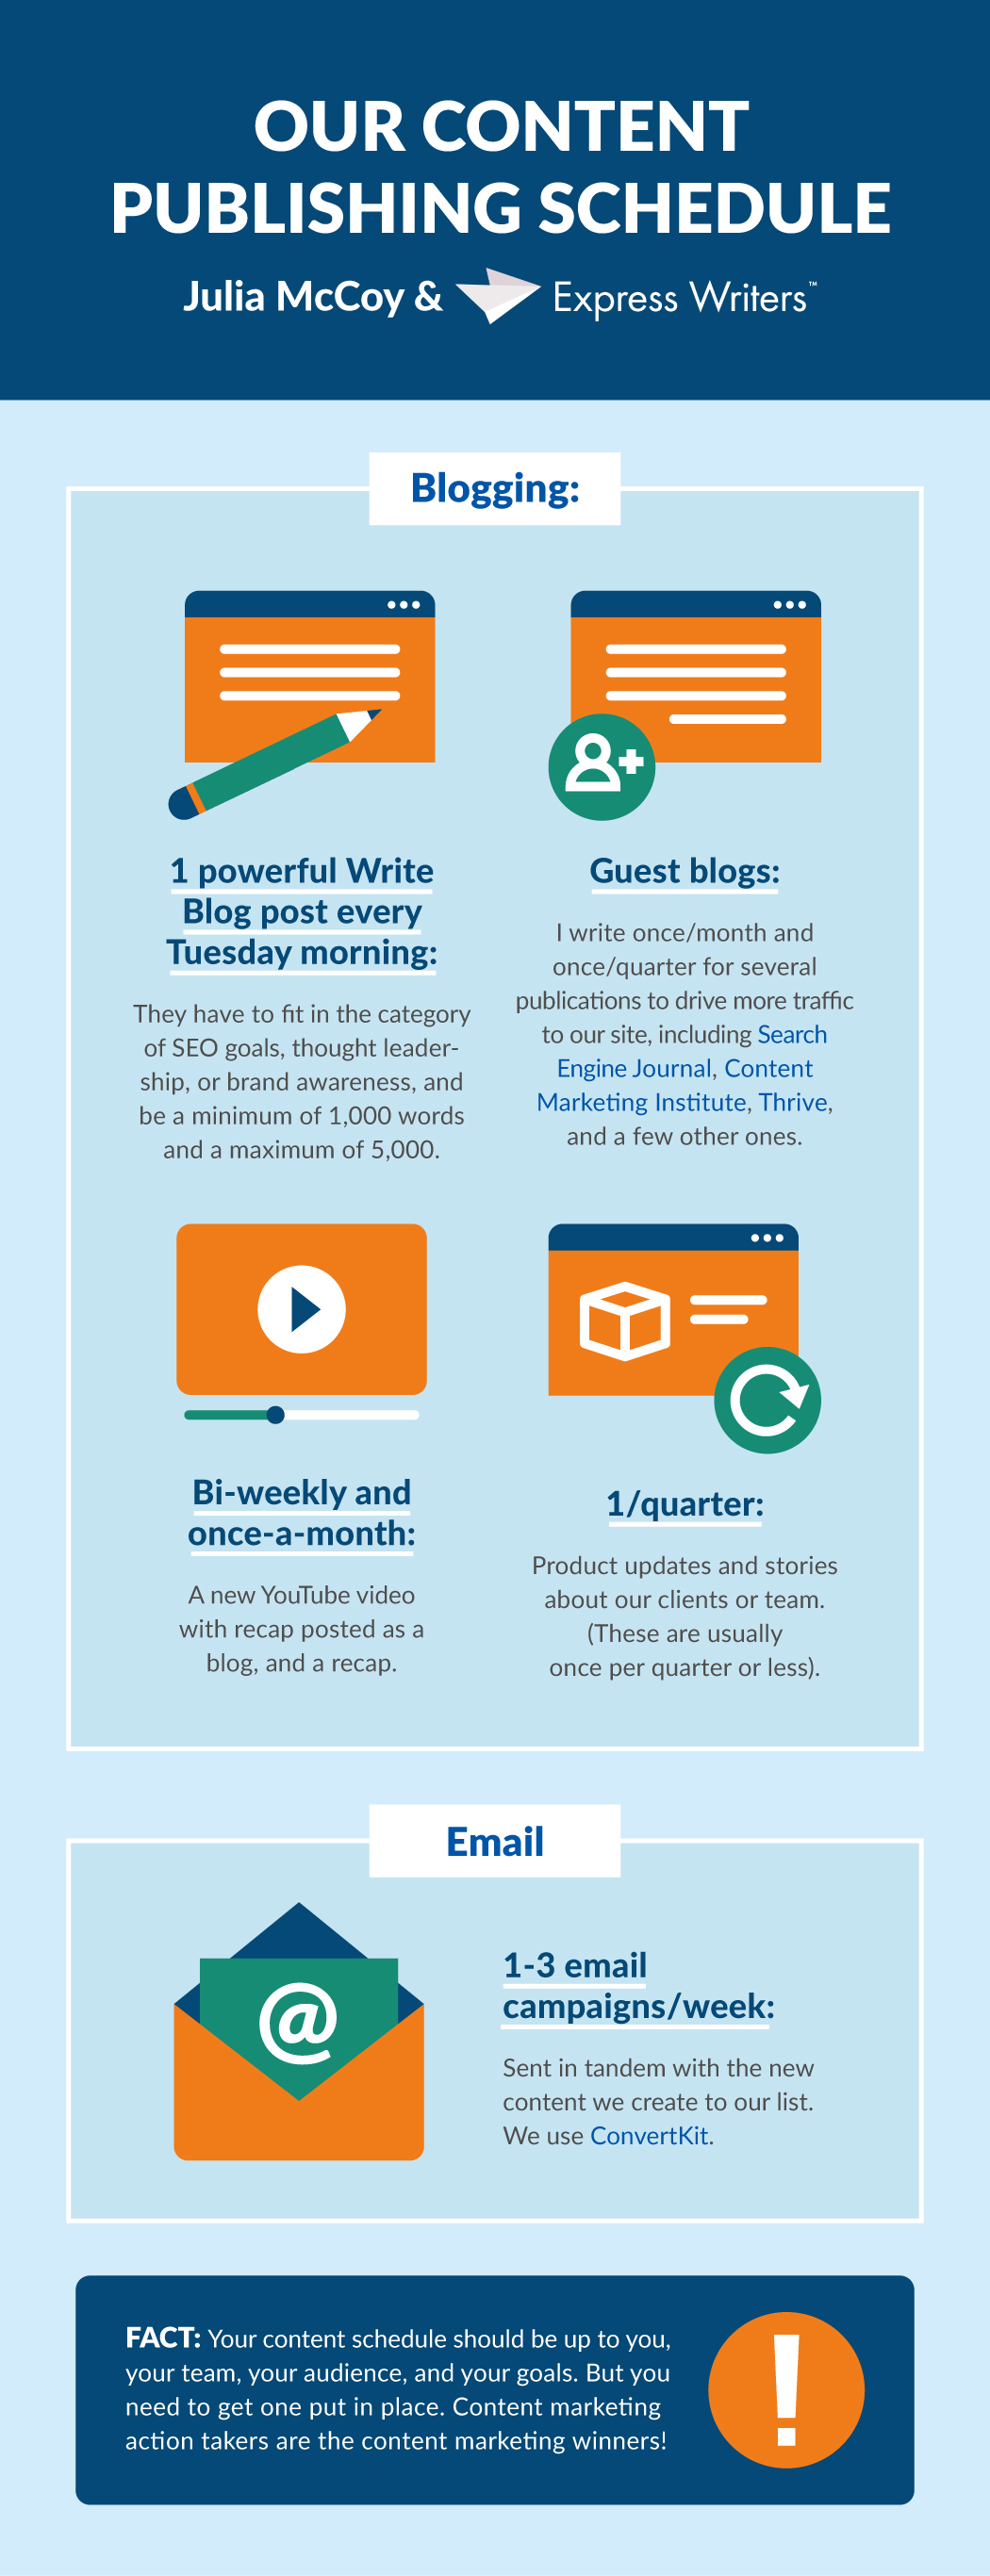 content schedule Express Writers